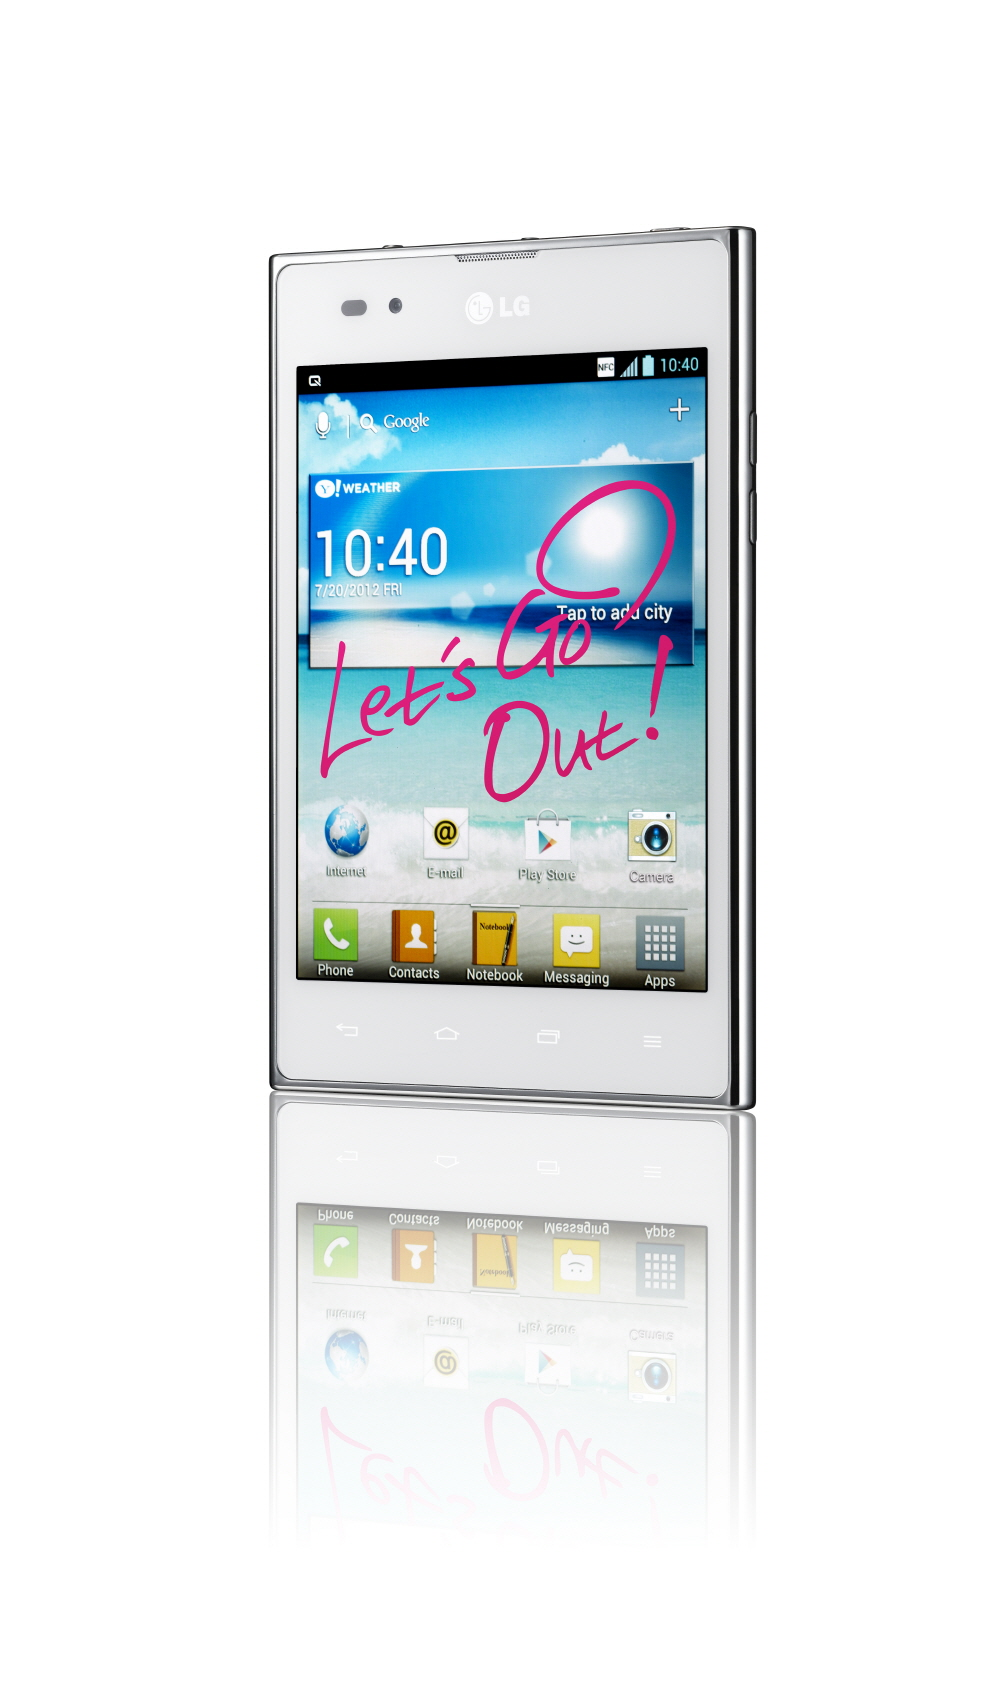 15-degree view of LG Optimus Vu: